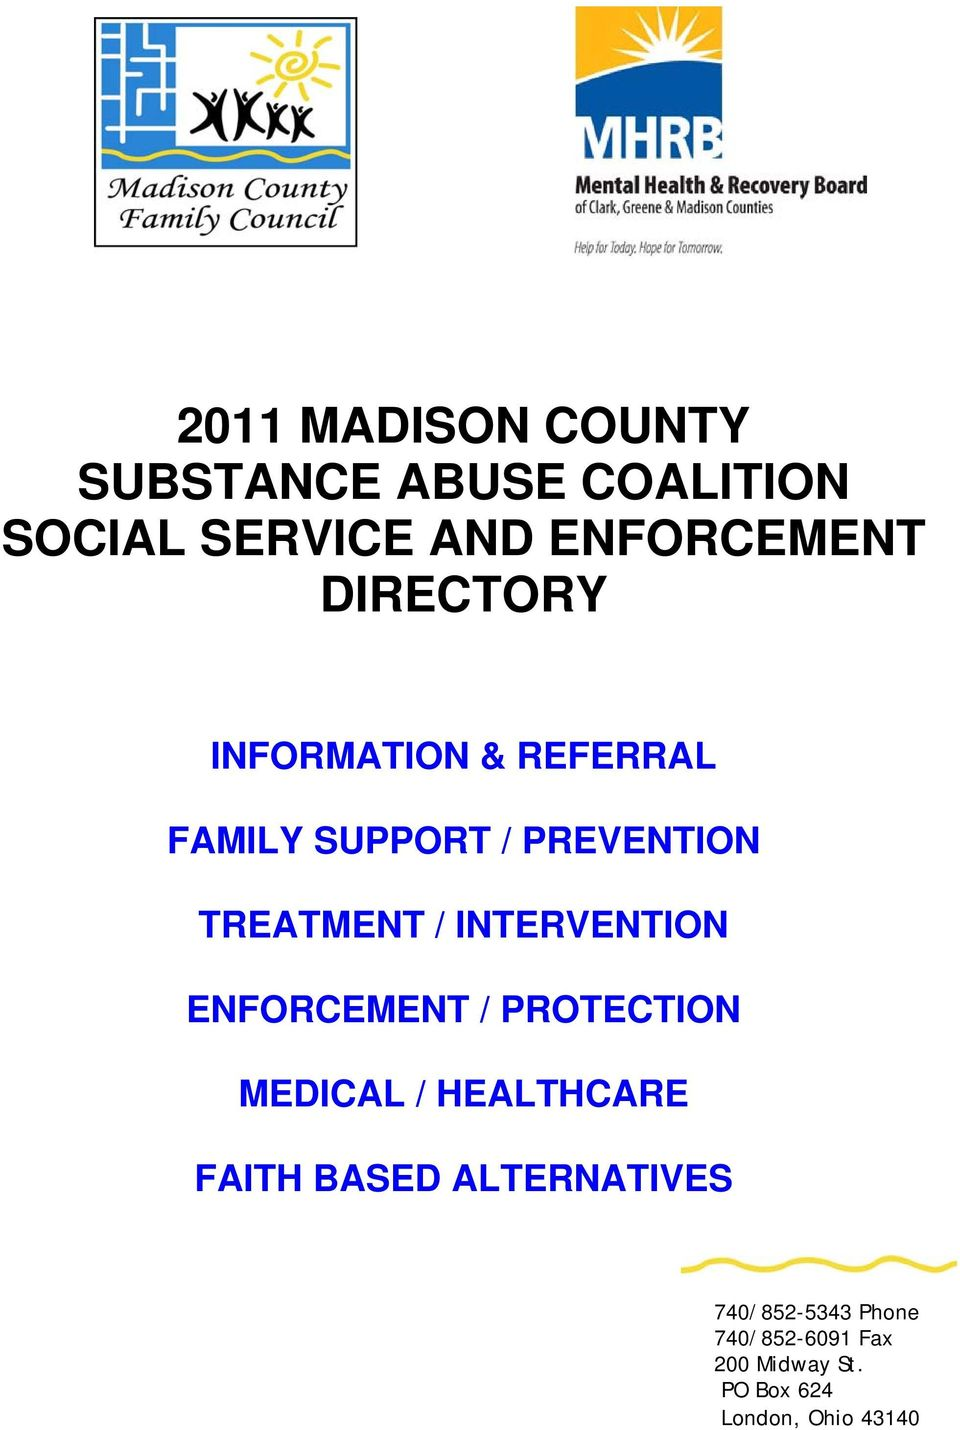 INTERVENTION ENFORCEMENT / PROTECTION MEDICAL / HEALTHCARE FAITH BASED